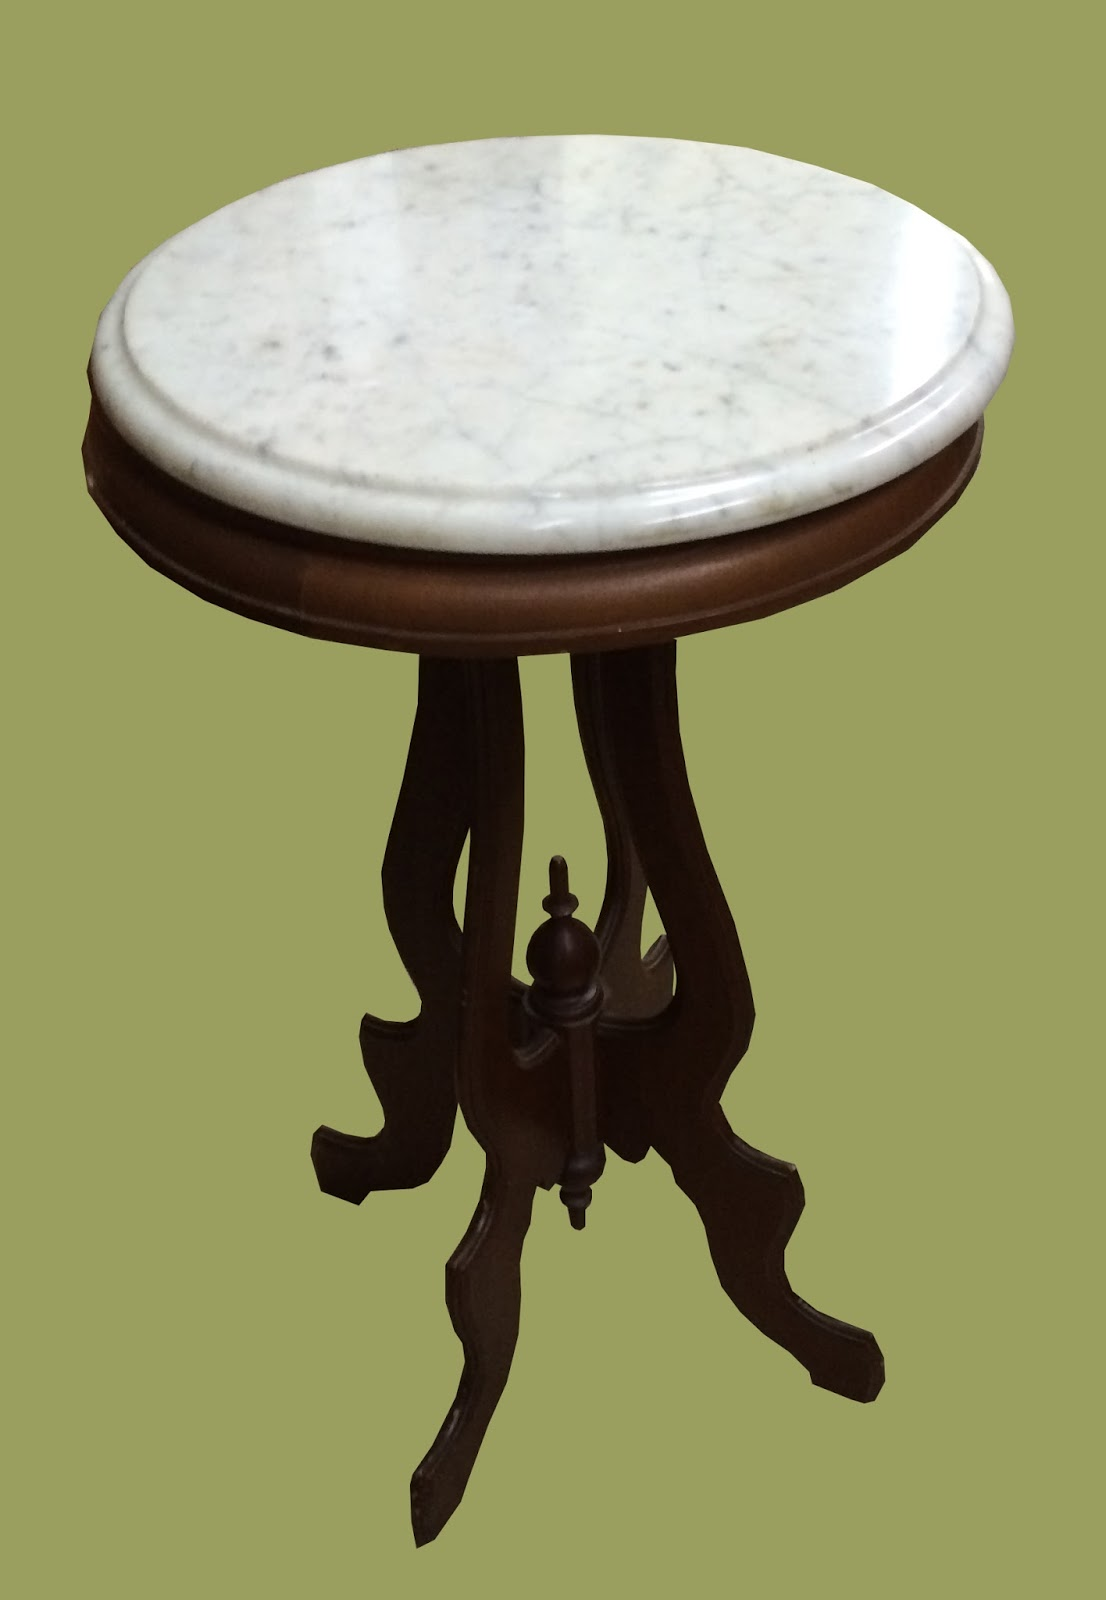 uhuru furniture collectibles victorian marble top accent table sold west elm bistro white end with drawer casual dining sets dale tiffany desk lamp wood and iron coffee